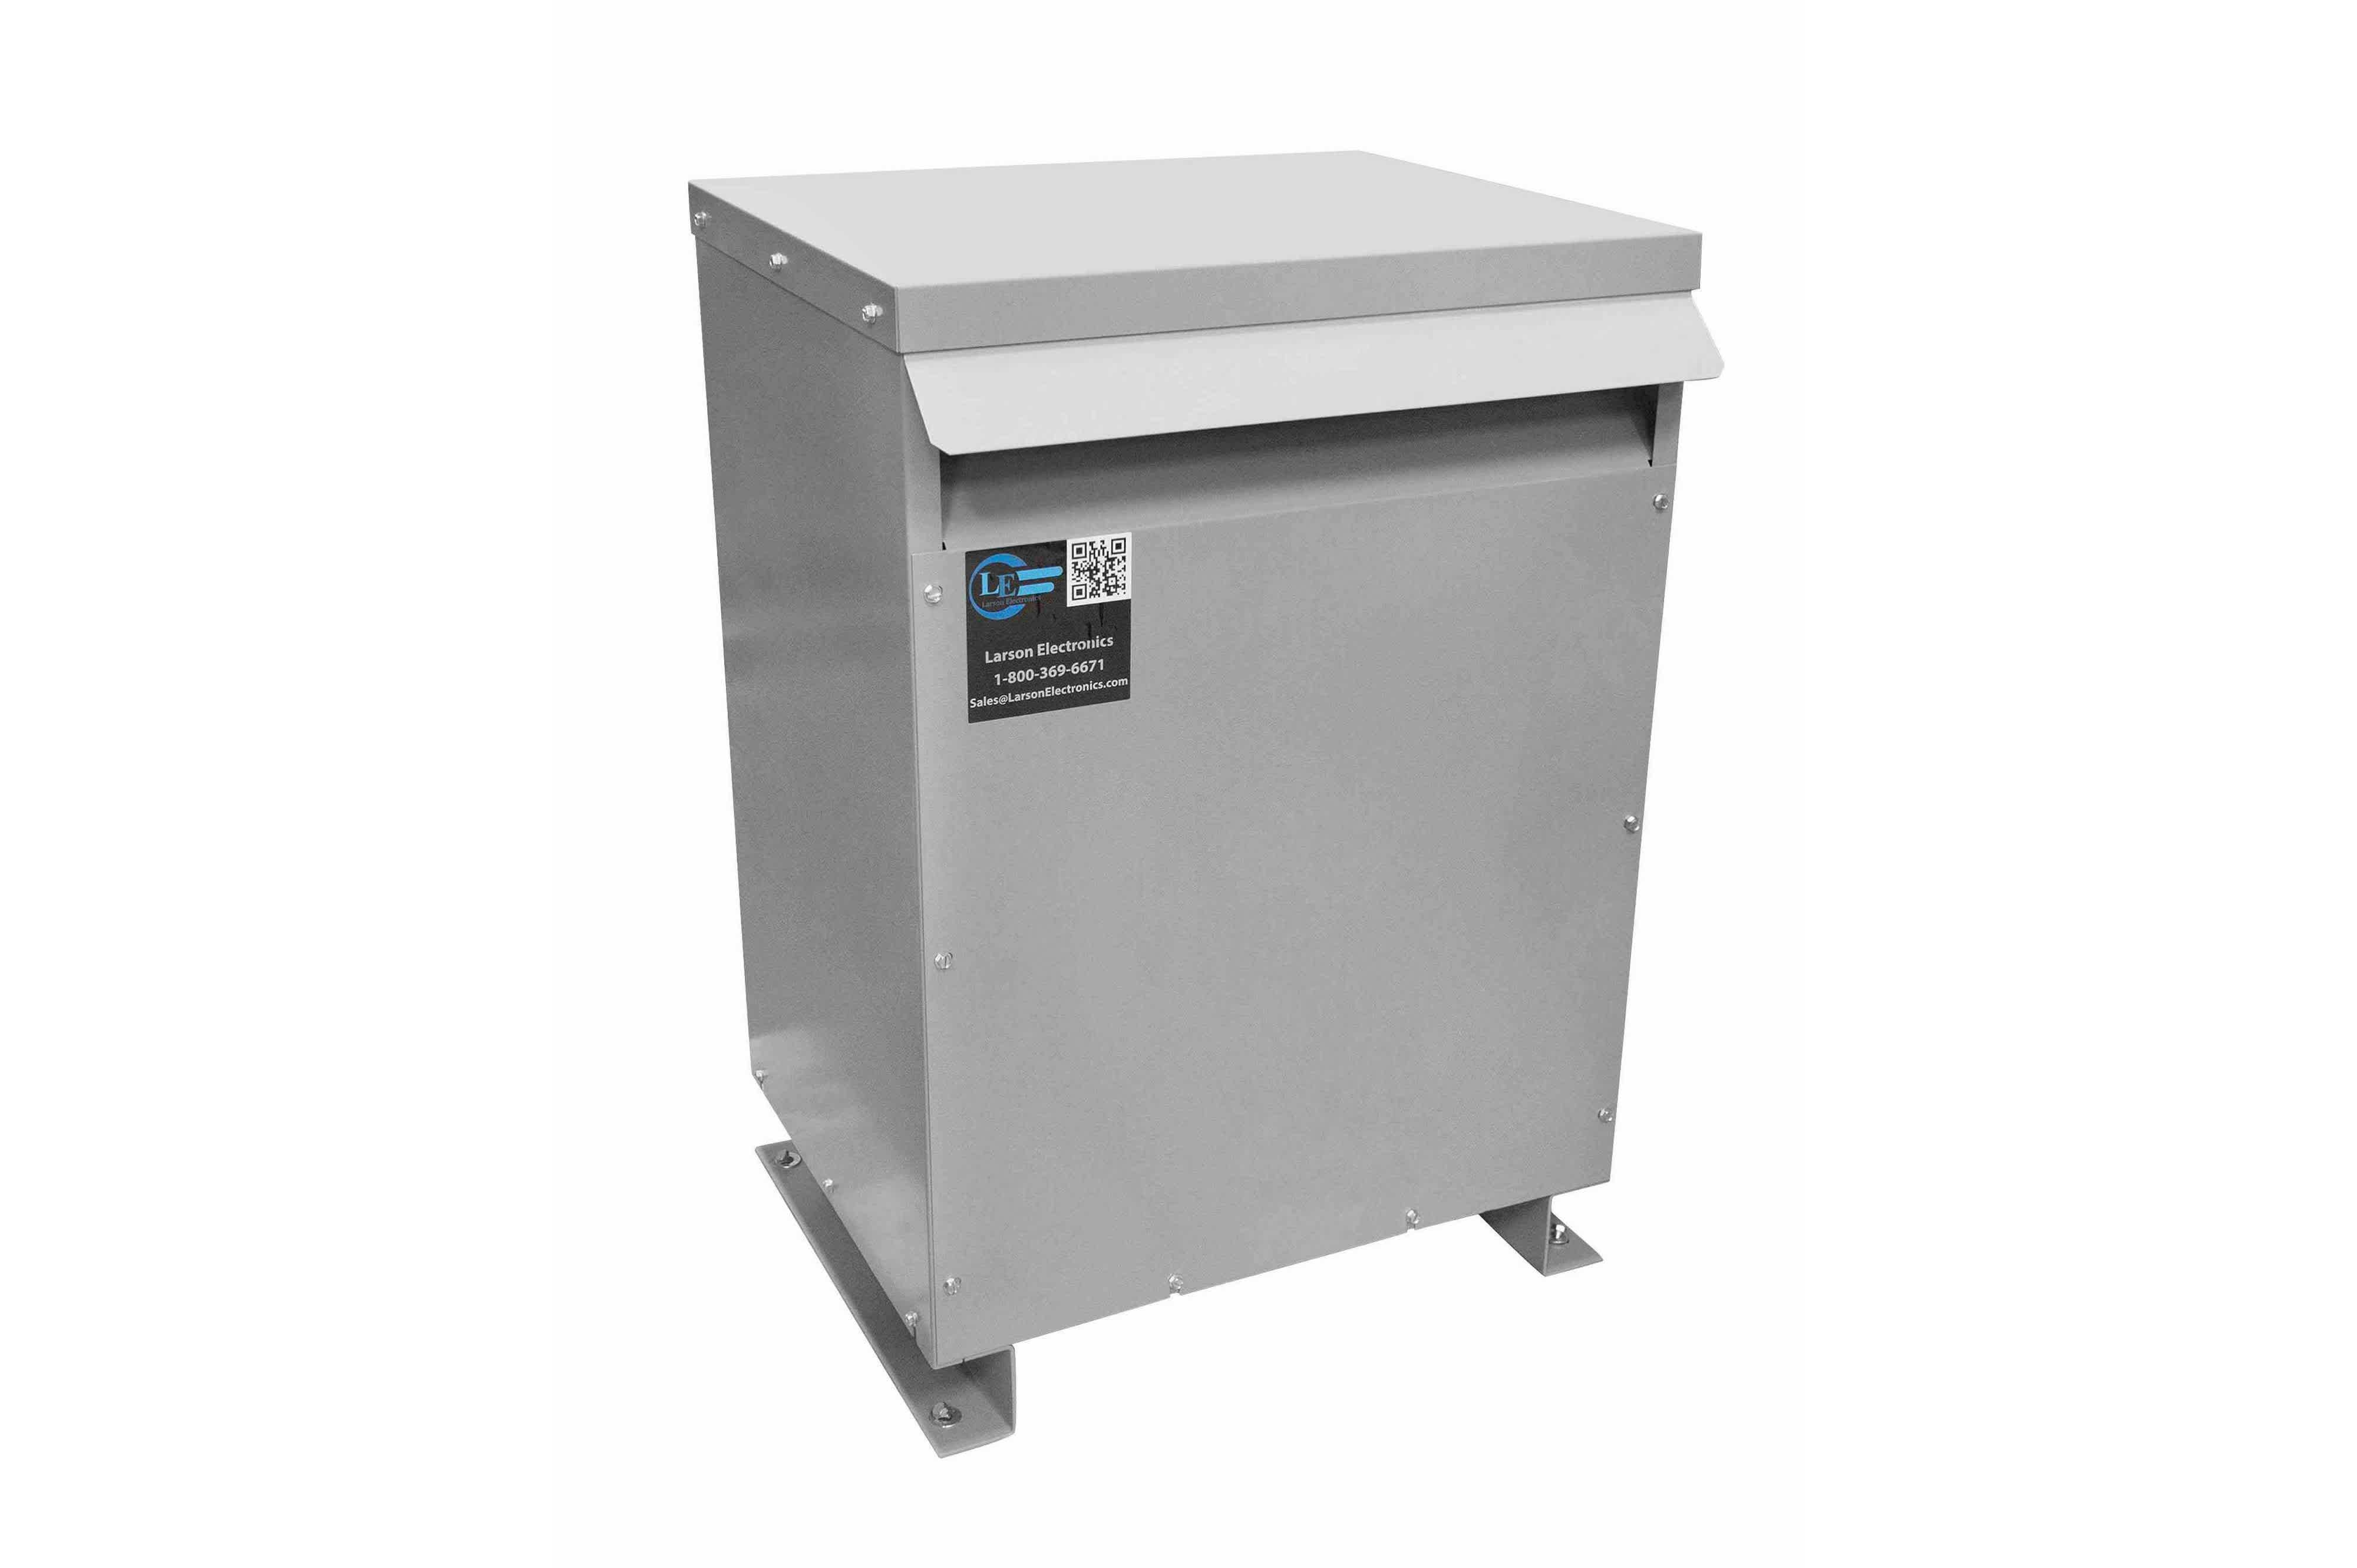 12 kVA 3PH Isolation Transformer, 460V Wye Primary, 400V Delta Secondary, N3R, Ventilated, 60 Hz